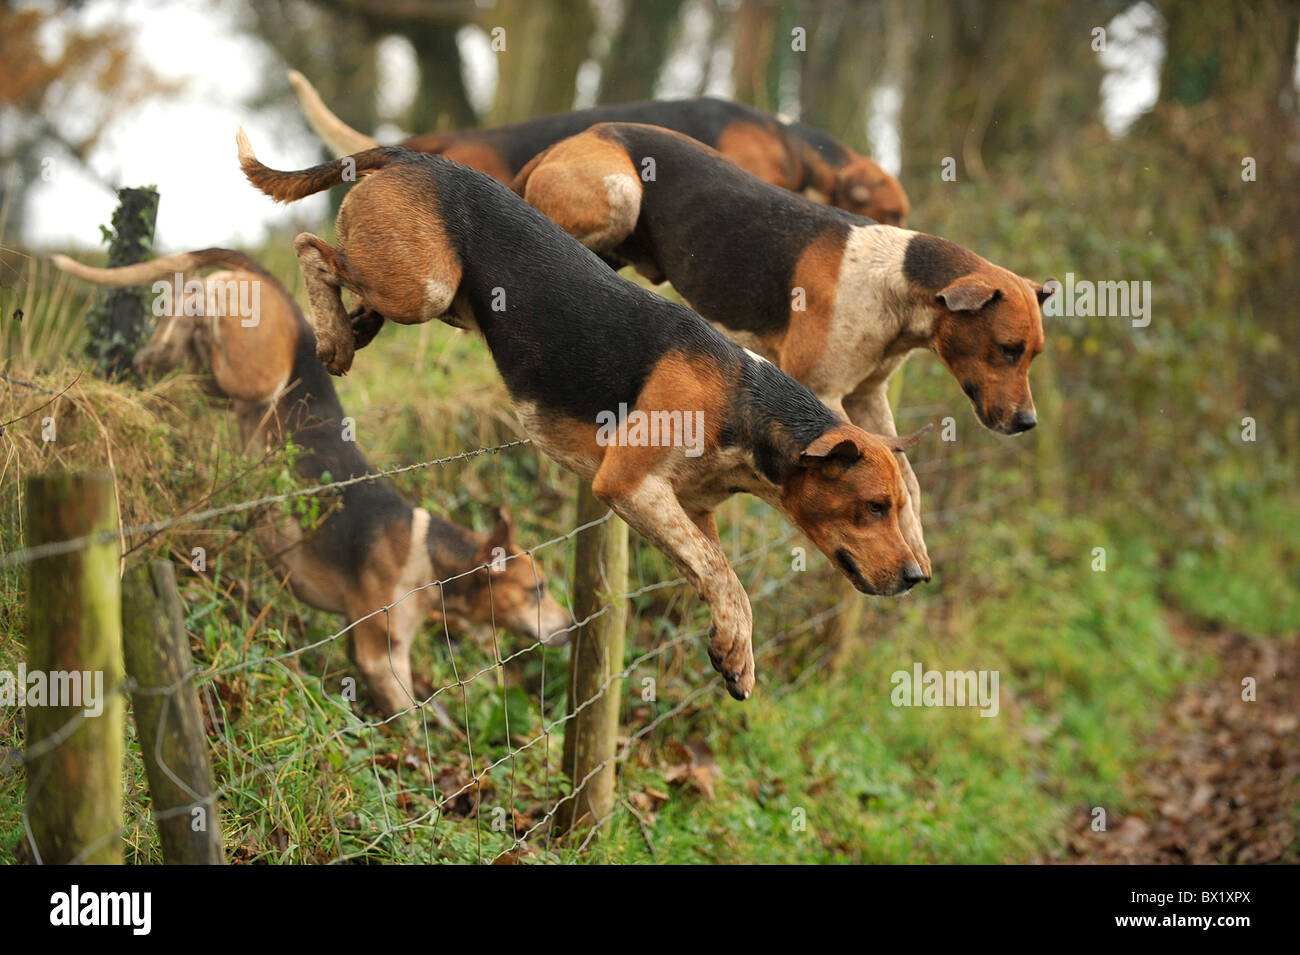 foxhounds jumping barbed wire fence - Stock Image